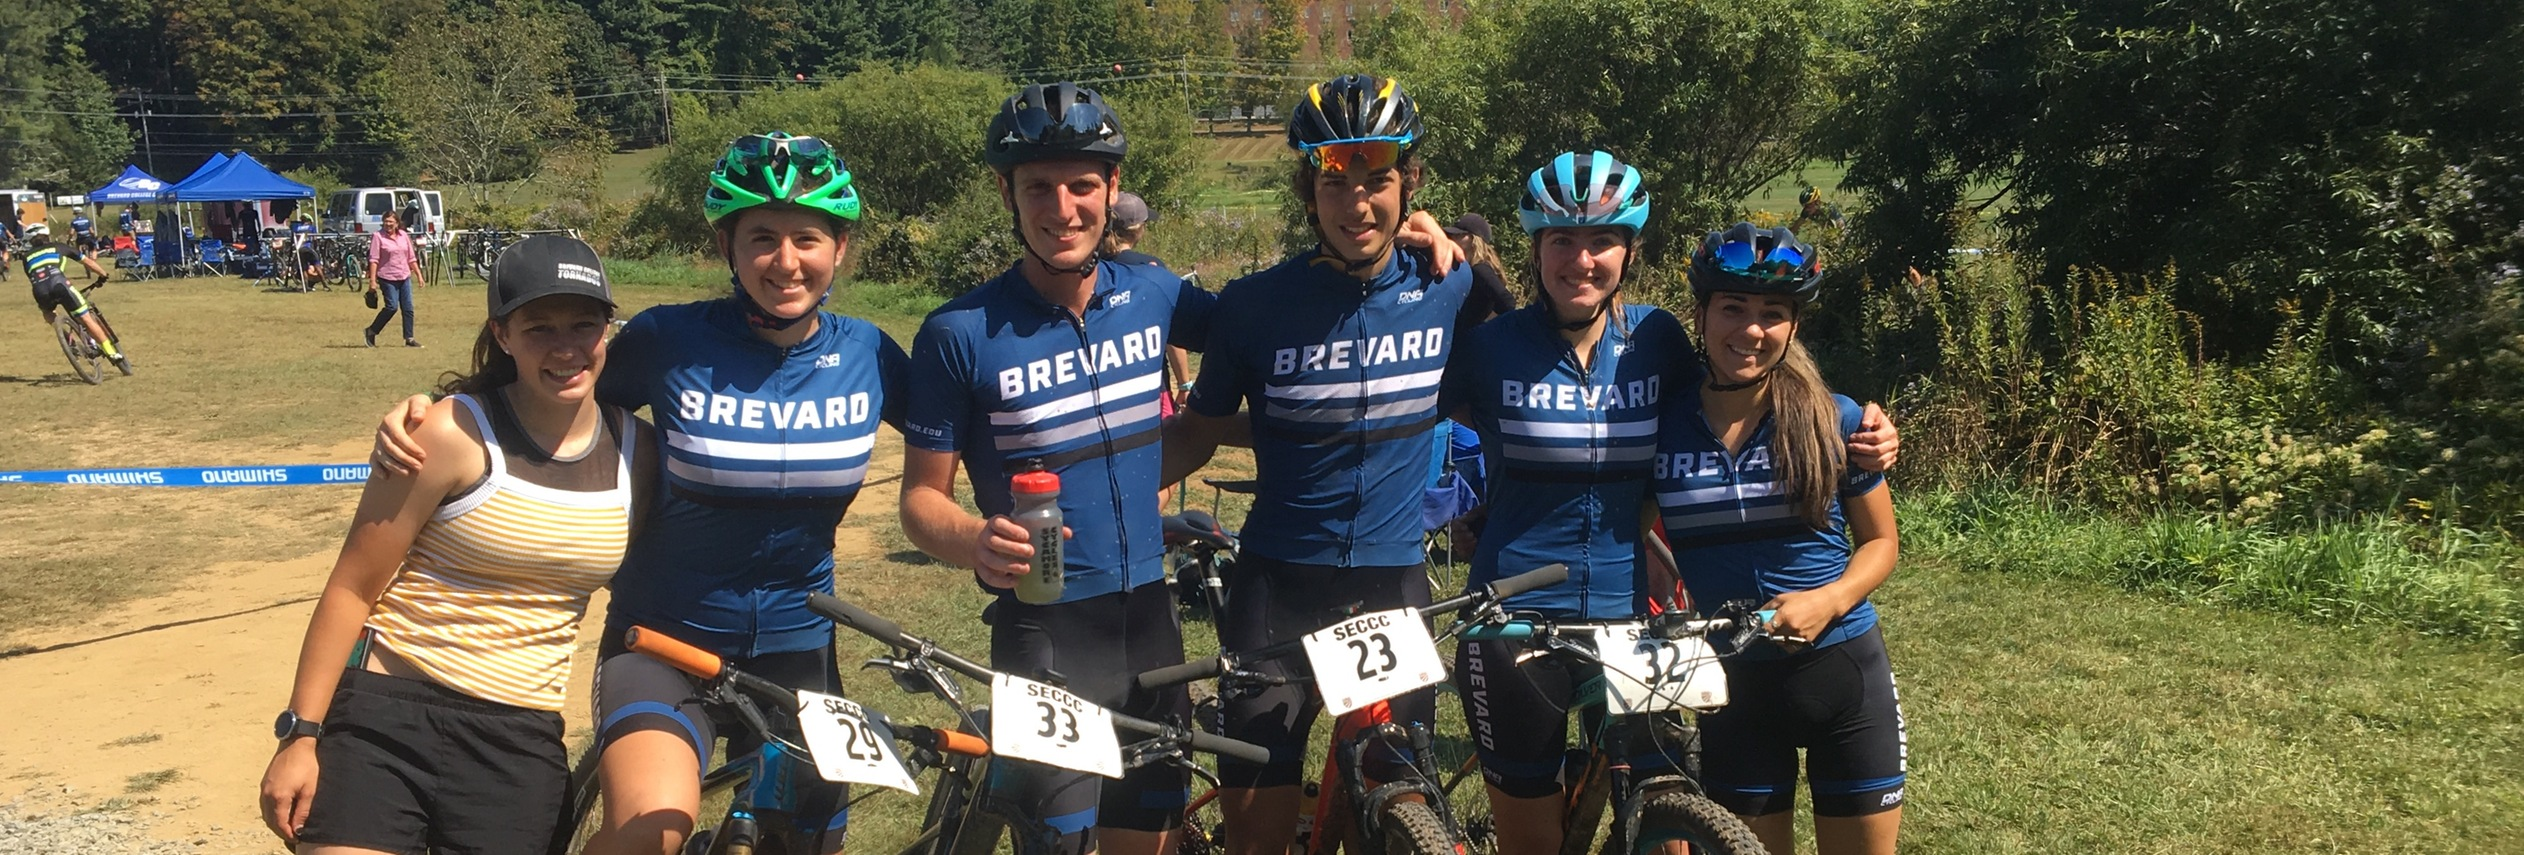 Impressive Mountain Biking Performance by Tornados for Second Straight Week